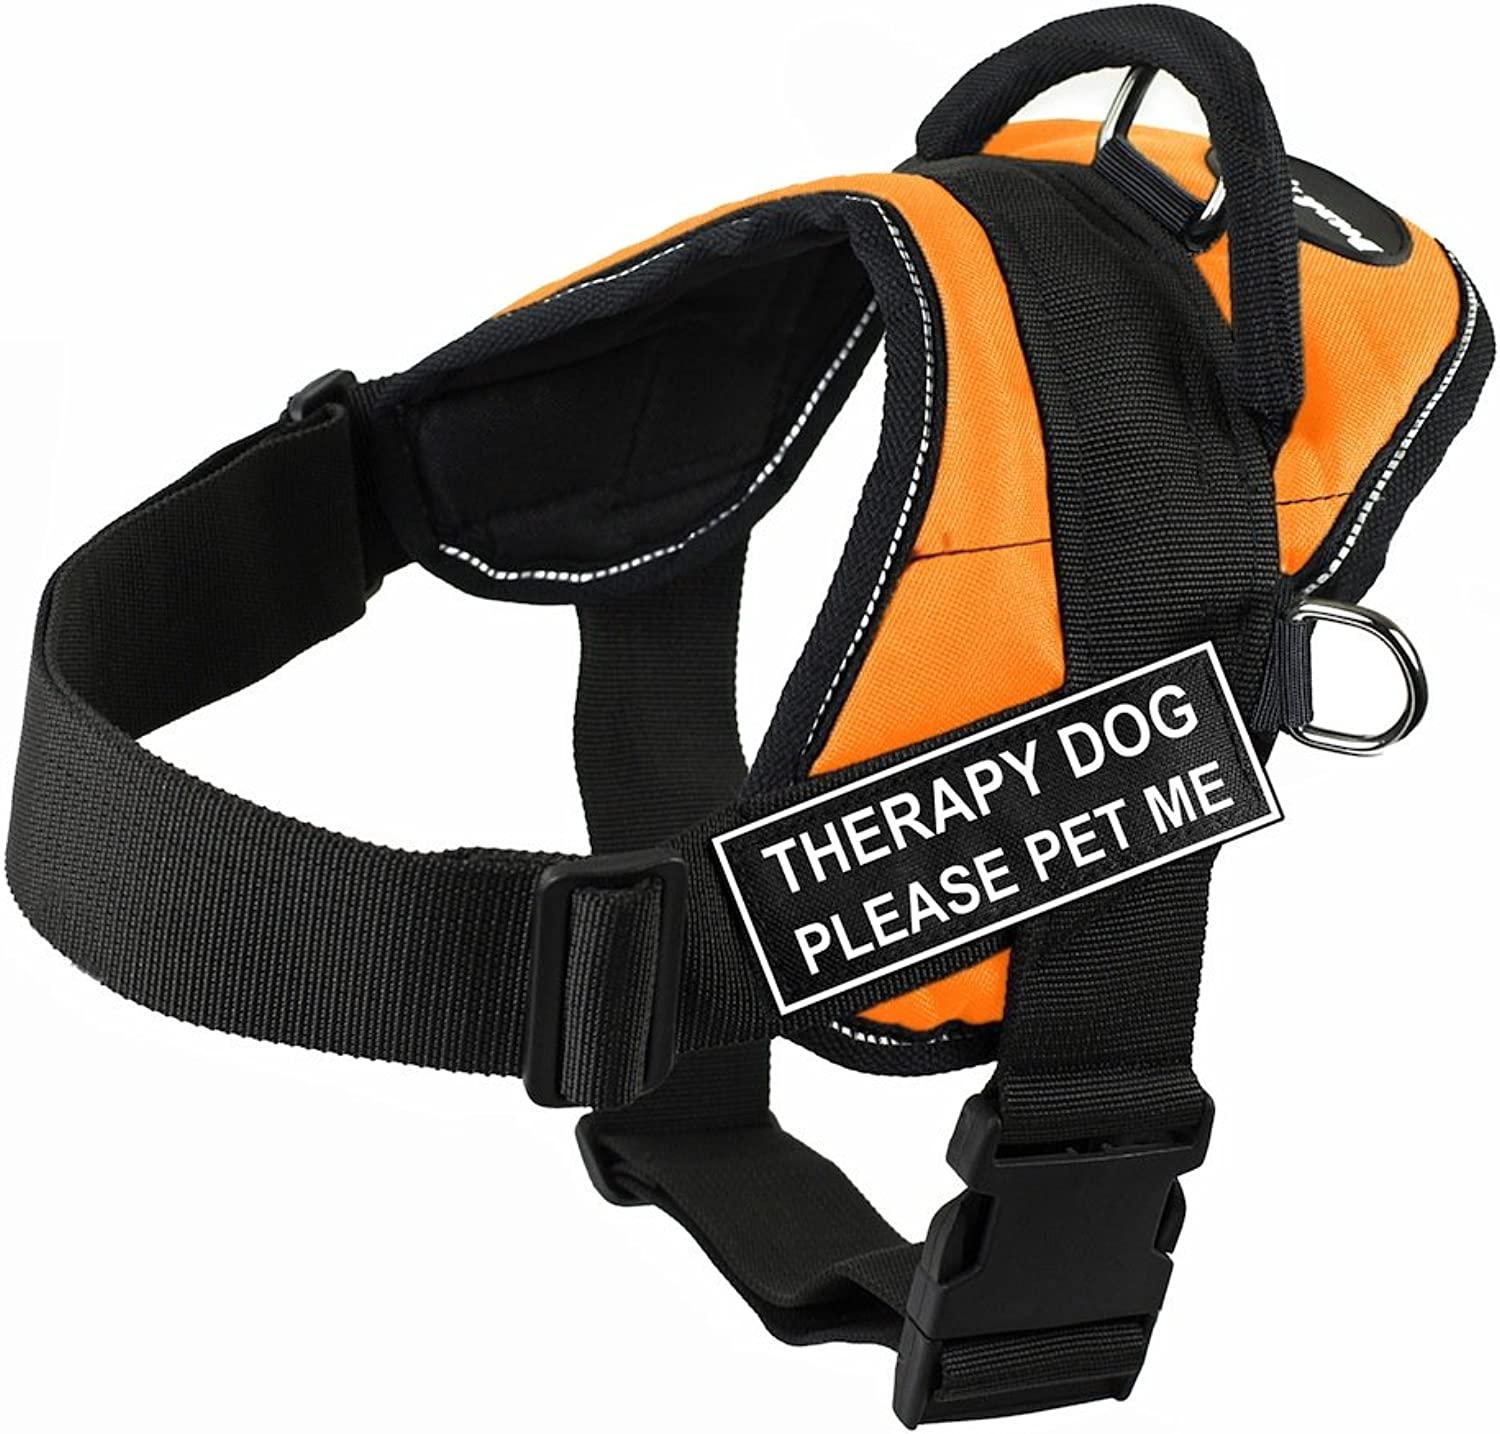 Dean & Tyler DT Fun Therapy Dog Please Pet Me Harness with Reflective Trim, XSmall, orange